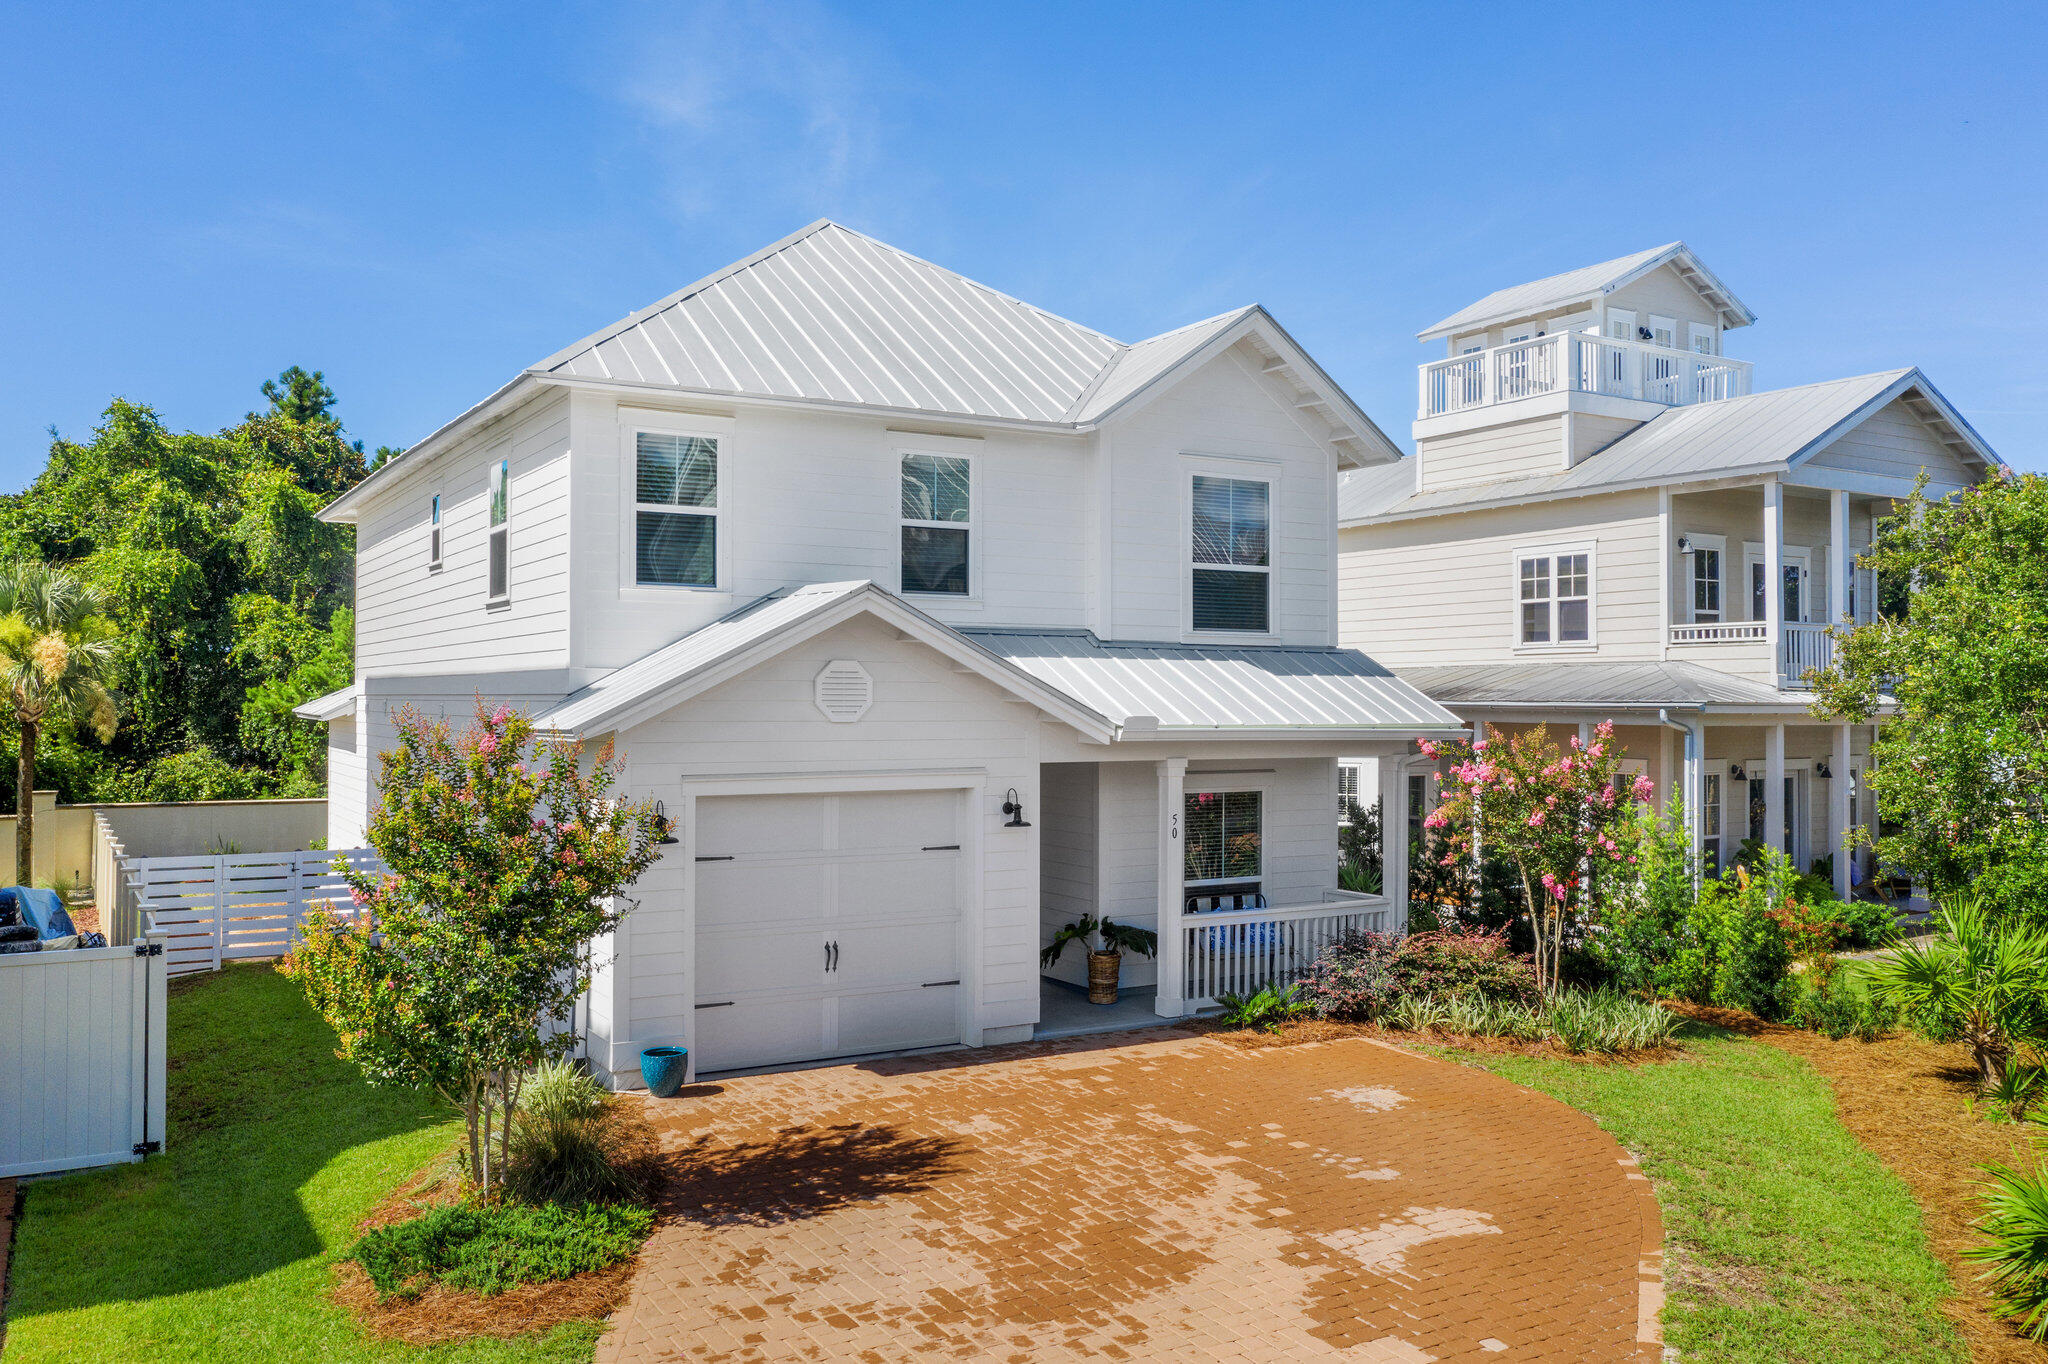 MLS Property 877723 for sale in Inlet Beach